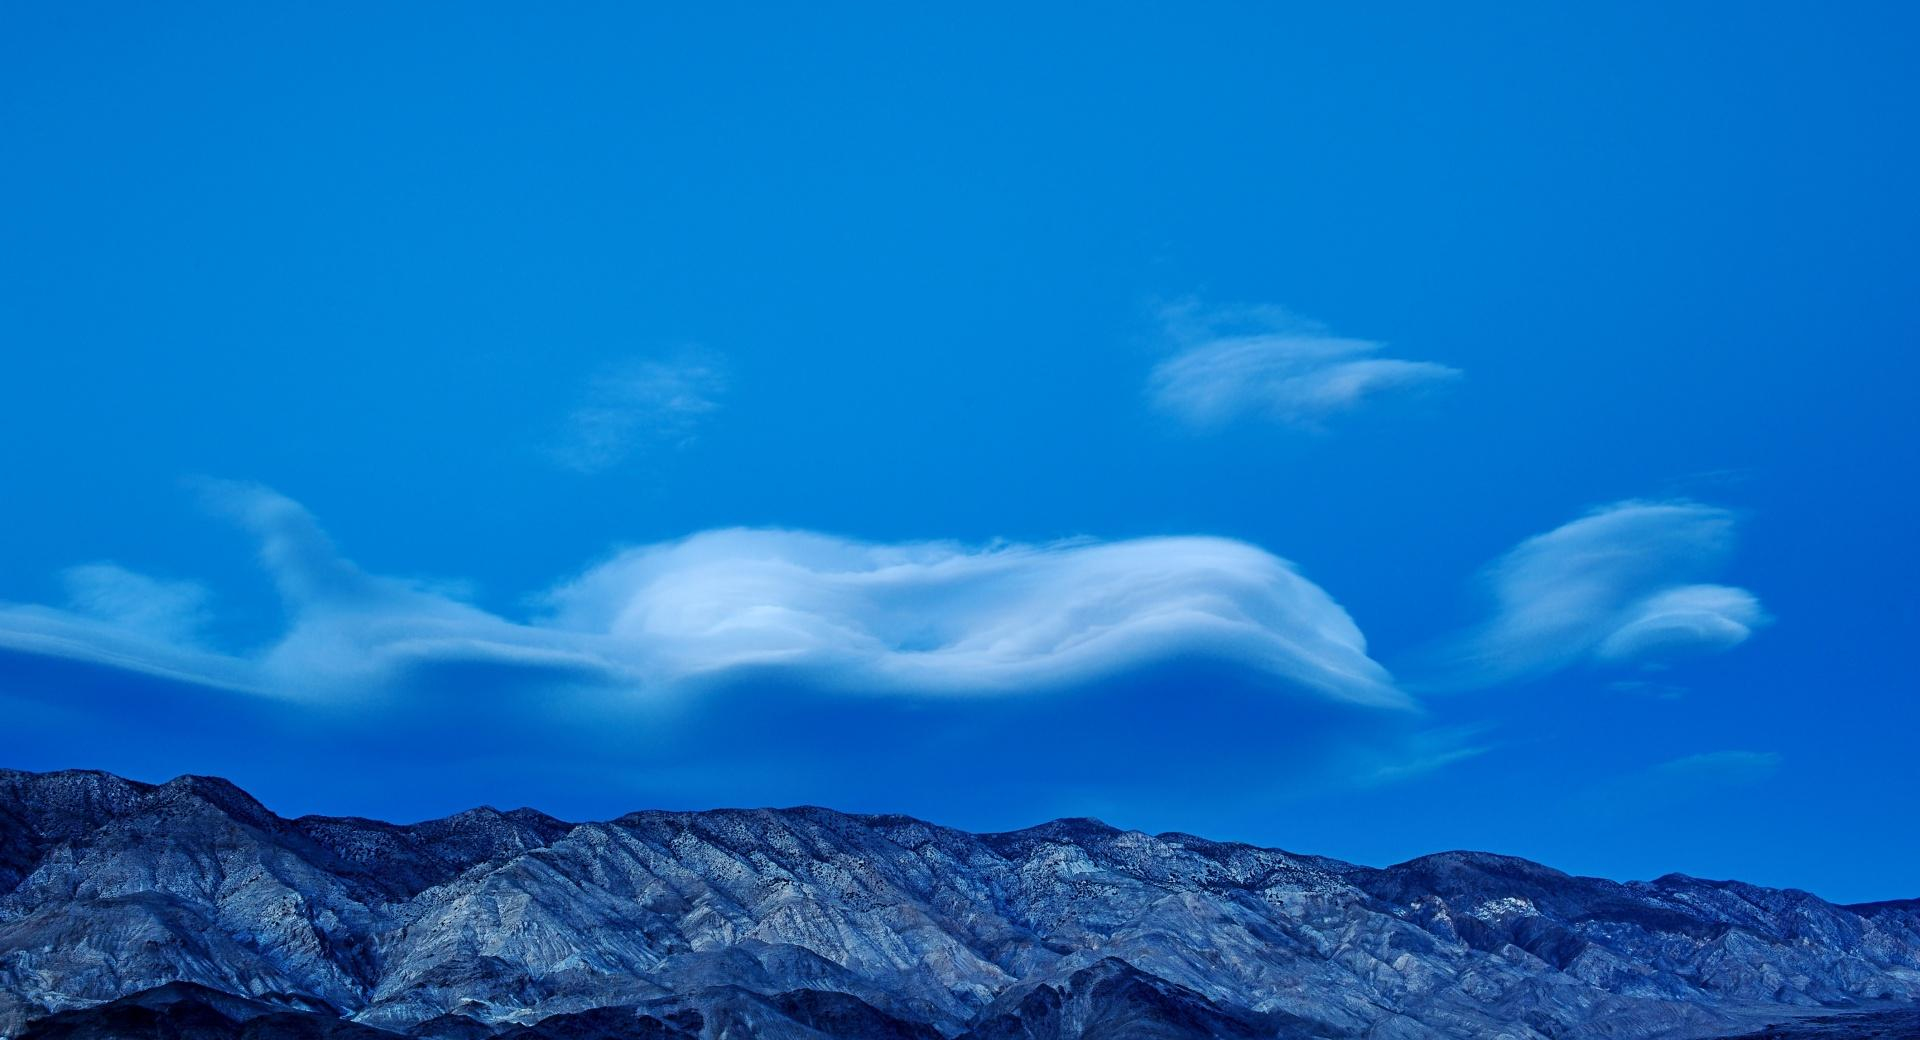 Wavy Clouds above The Mountains wallpapers HD quality